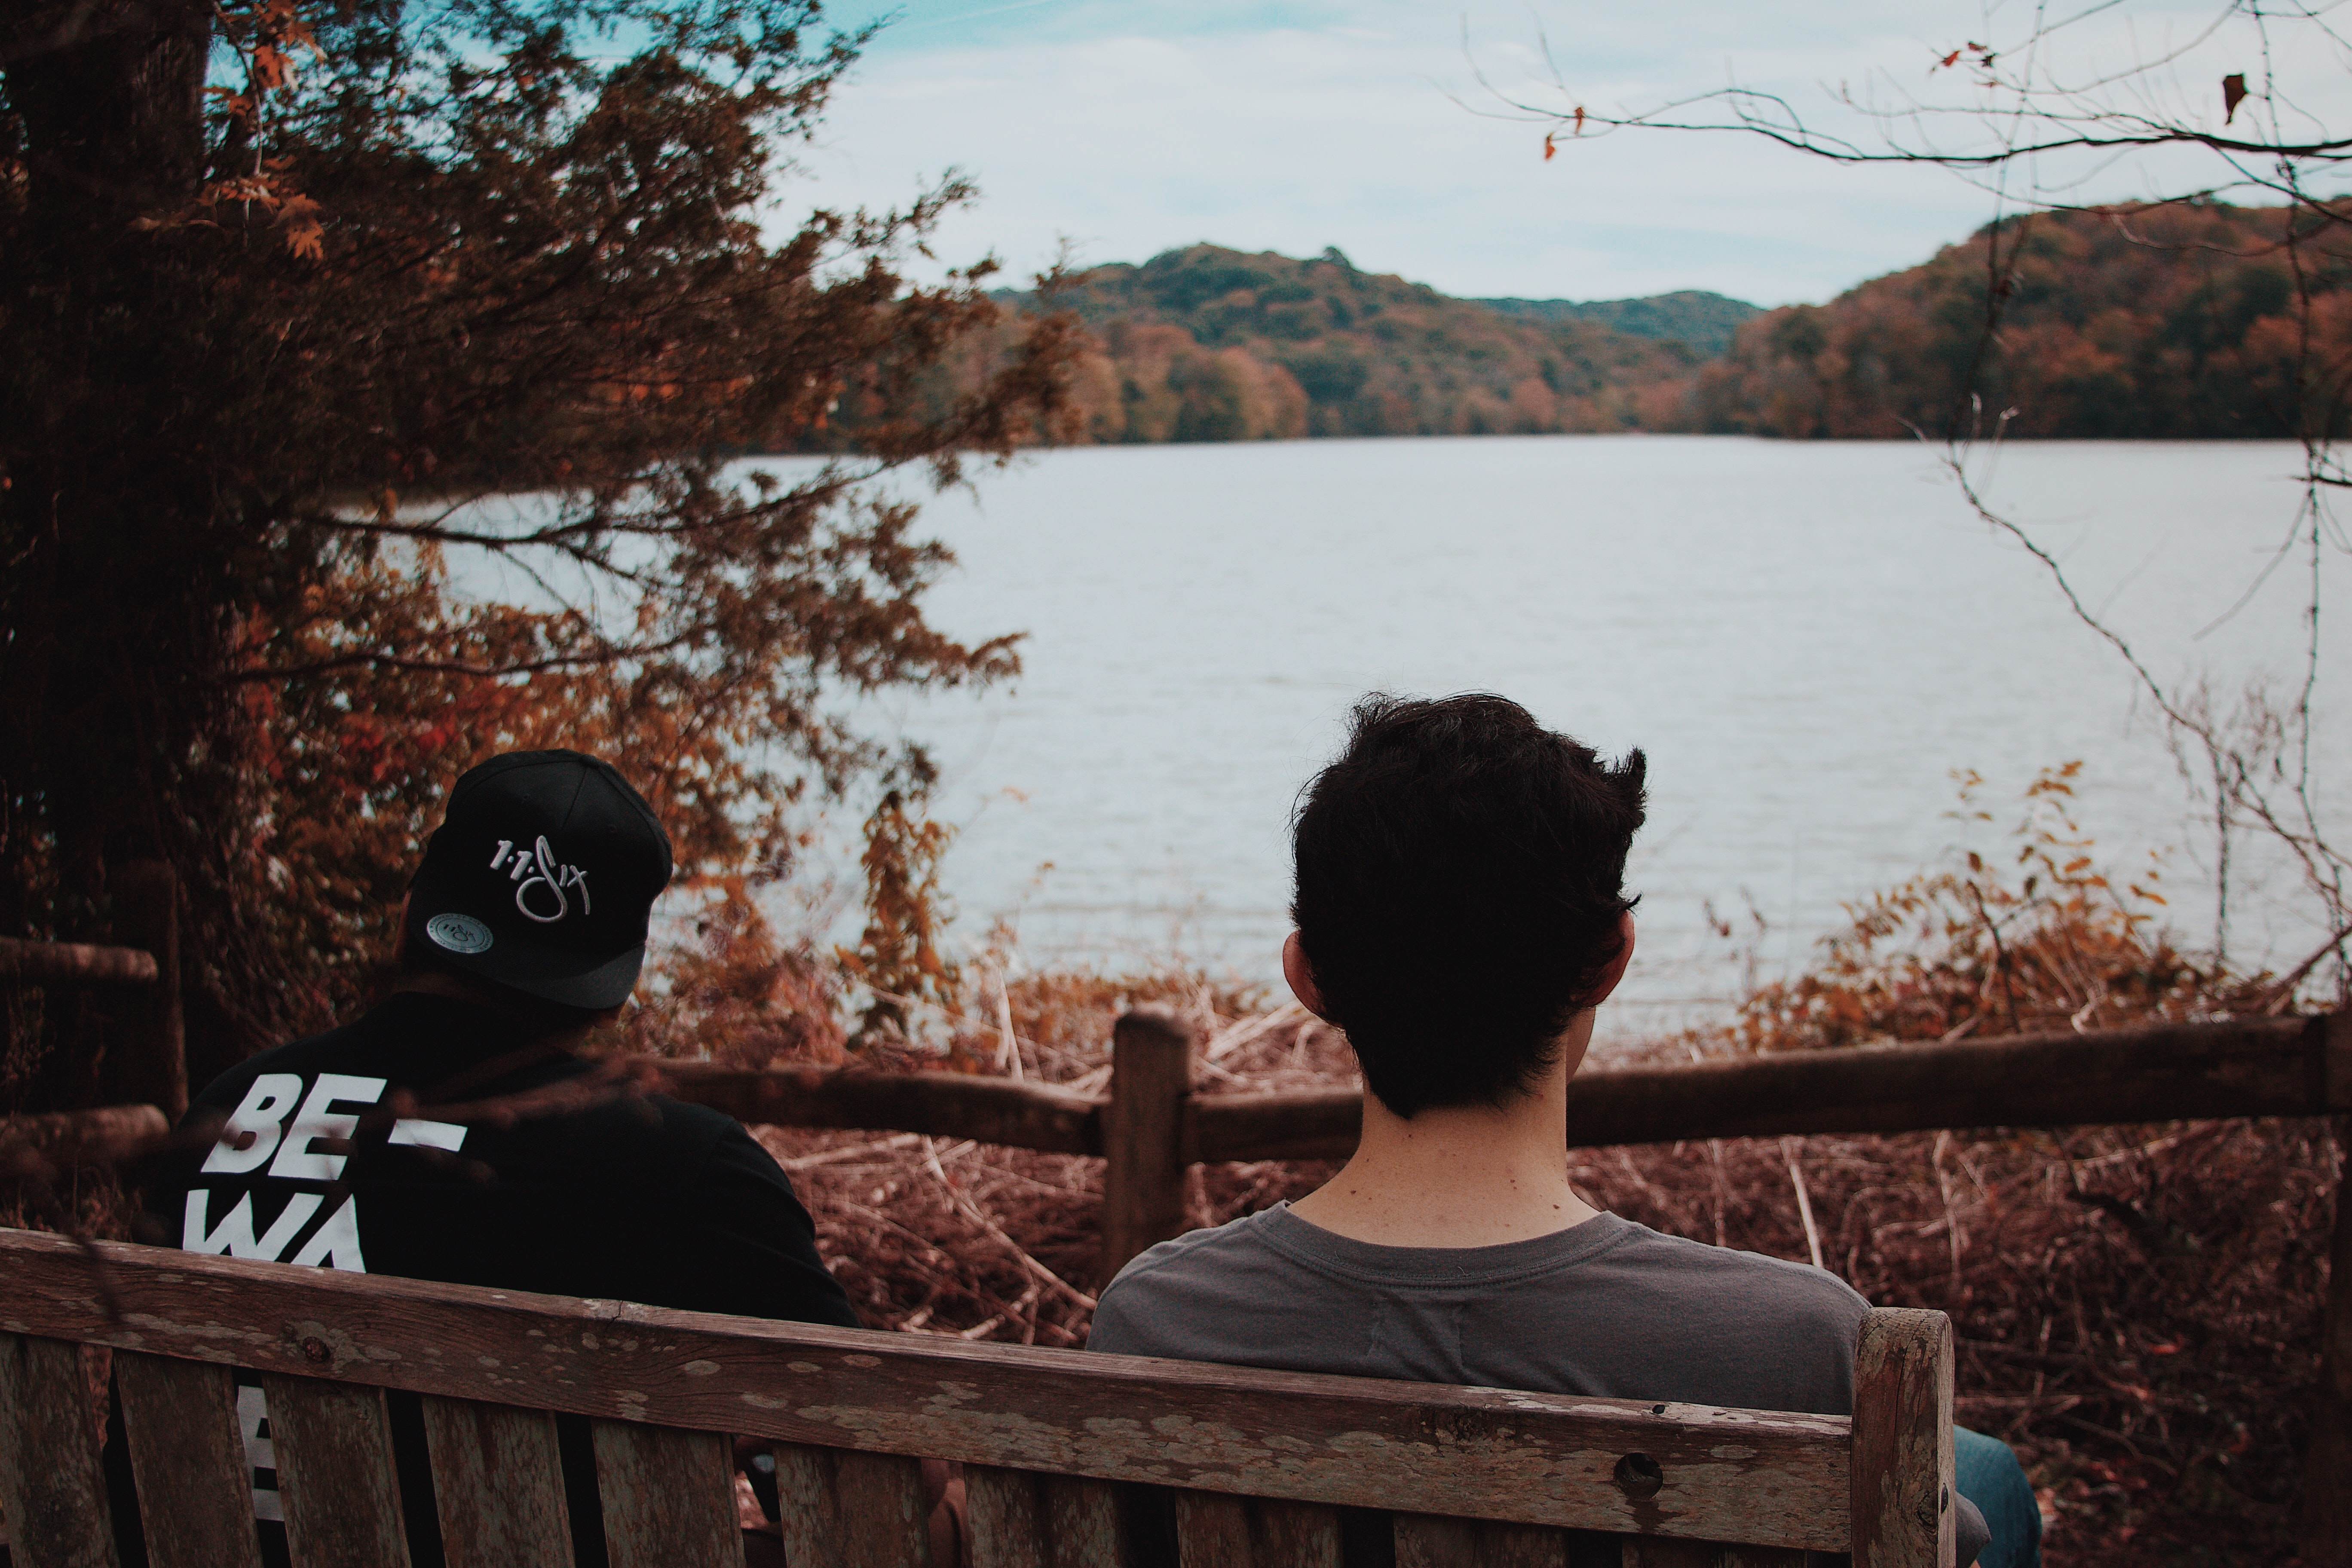 two men sitting on wooden bench looking at body of water